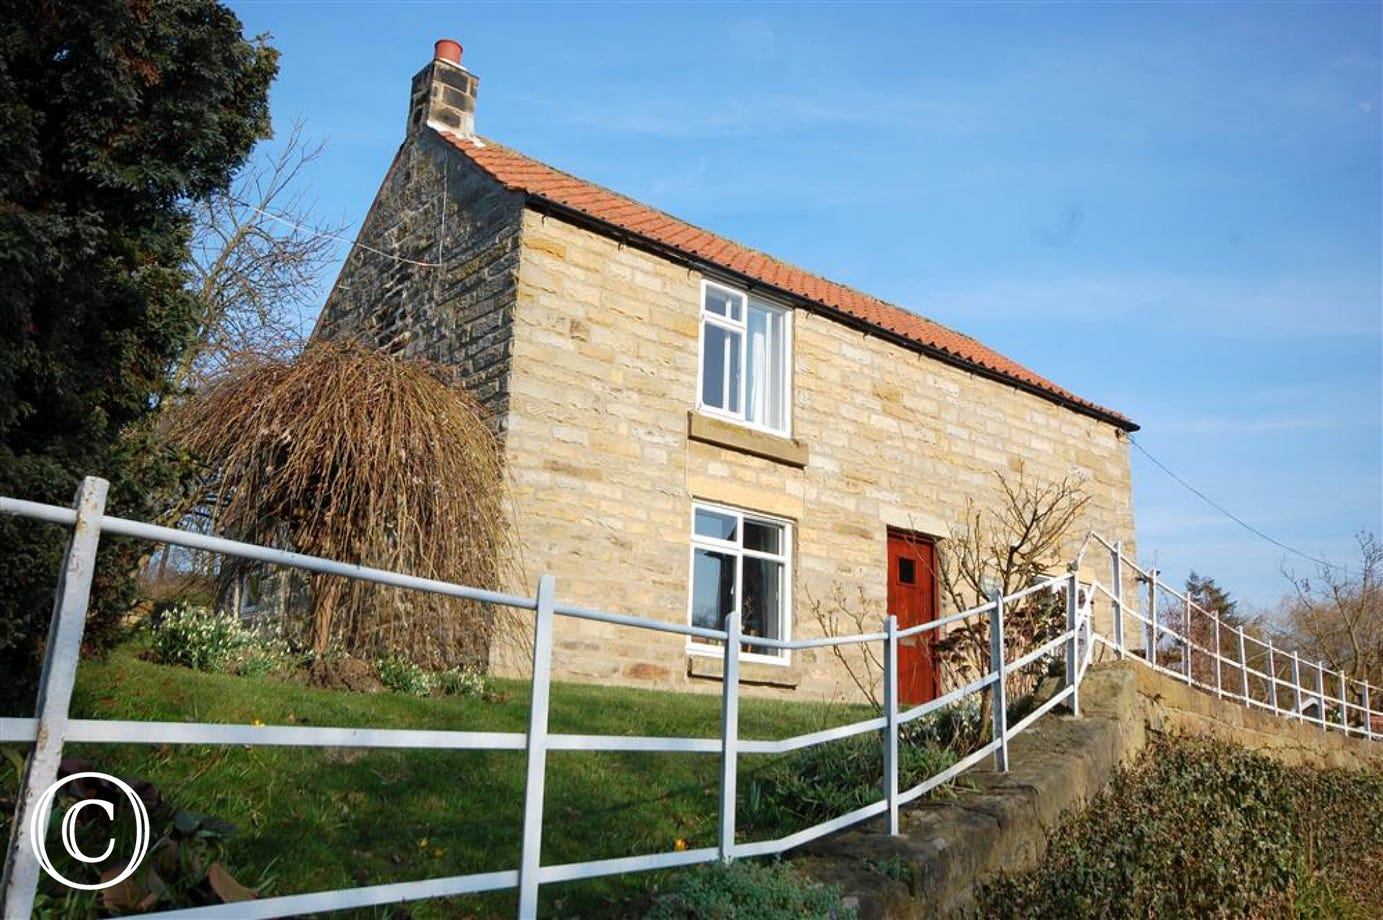 Exterior view of Rockley Cottage in Egton.